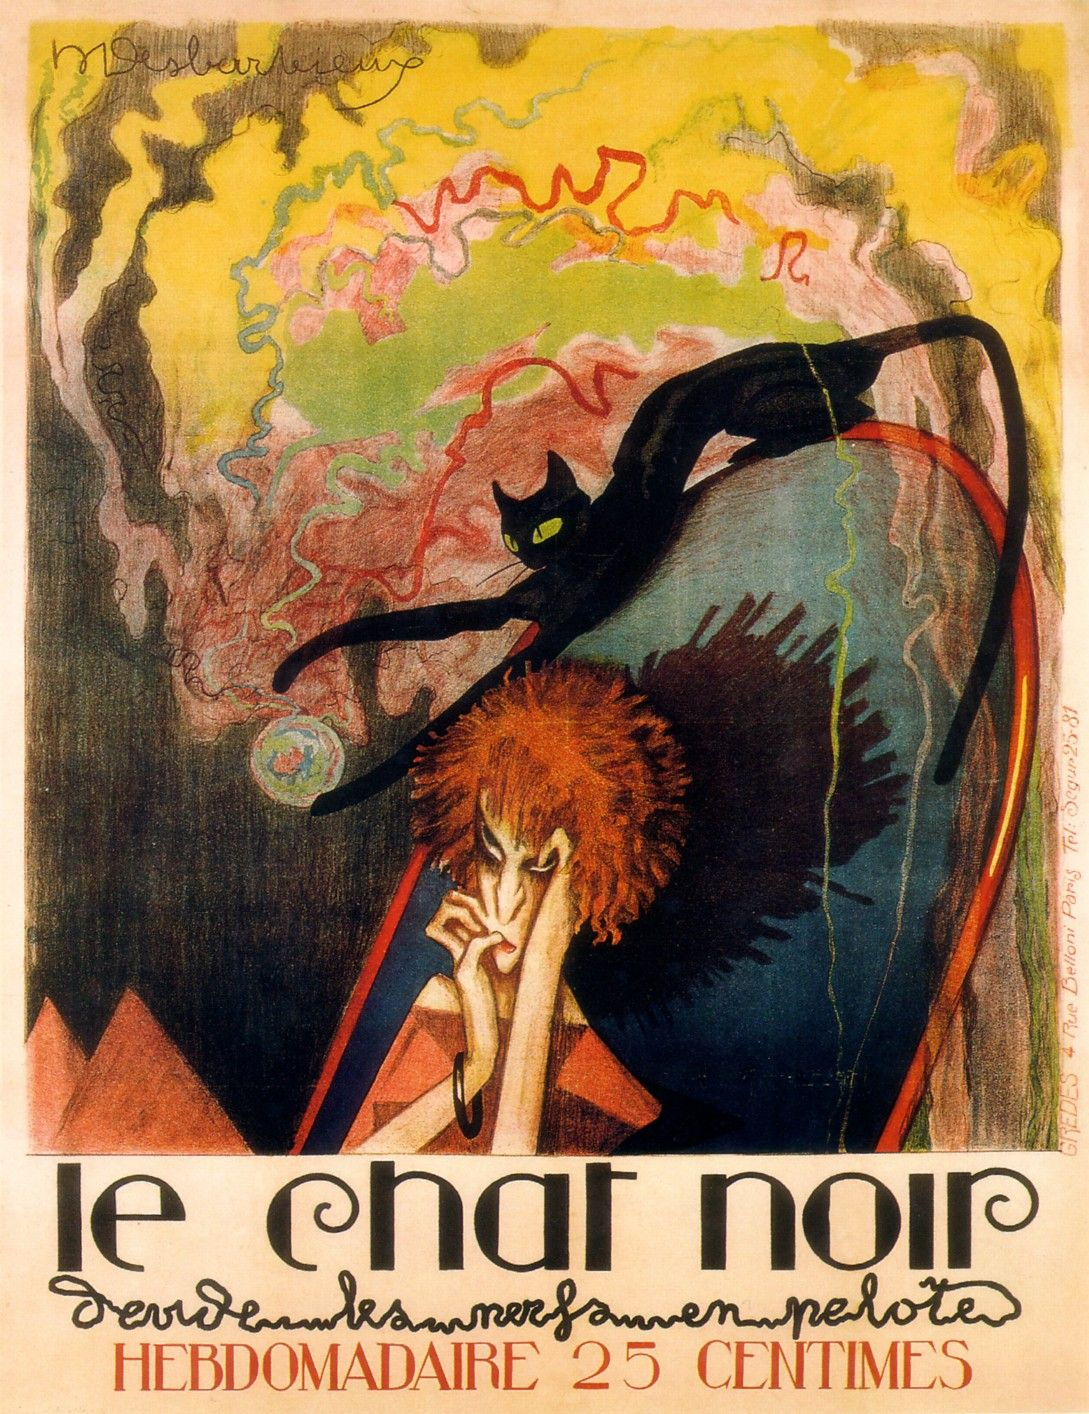 All sizes | Le chat noir - Hebdomadaire | Flickr - Photo Sharing!